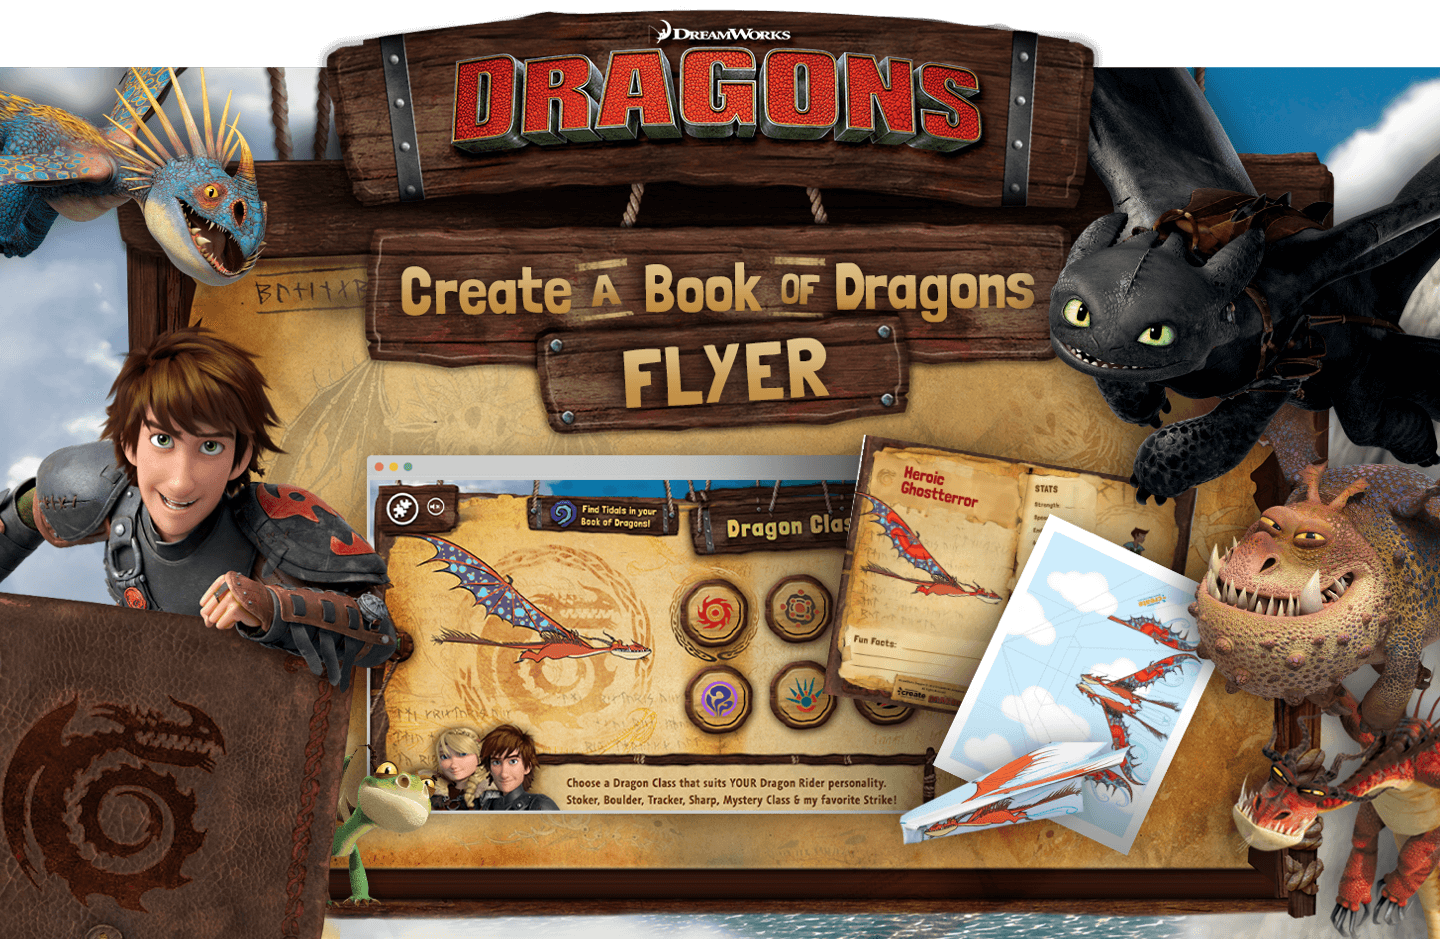 Dreamworks Mission Origami Dragon Instructions Advanced Diagram Electric In The How To Train Your Franchise Book Of Dragons Has Become A Centerpiece Story Richness Tomes Origins Inspired Us